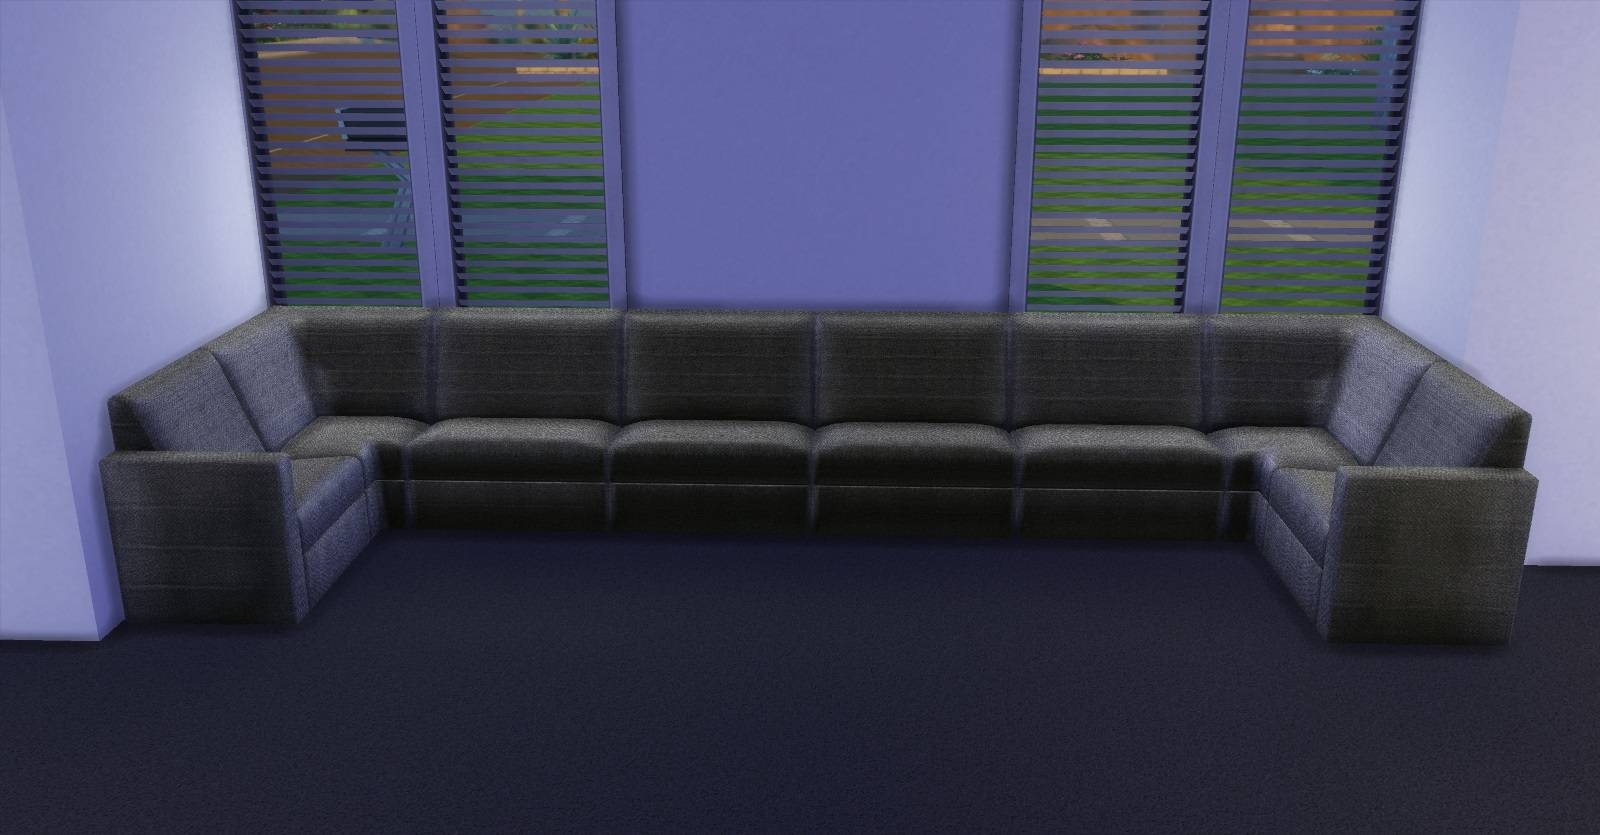 Extraordinary Sims 3 Sectional Sofa 18 For C Shaped Sofa Sectional within C Shaped Sofa (Image 12 of 30)